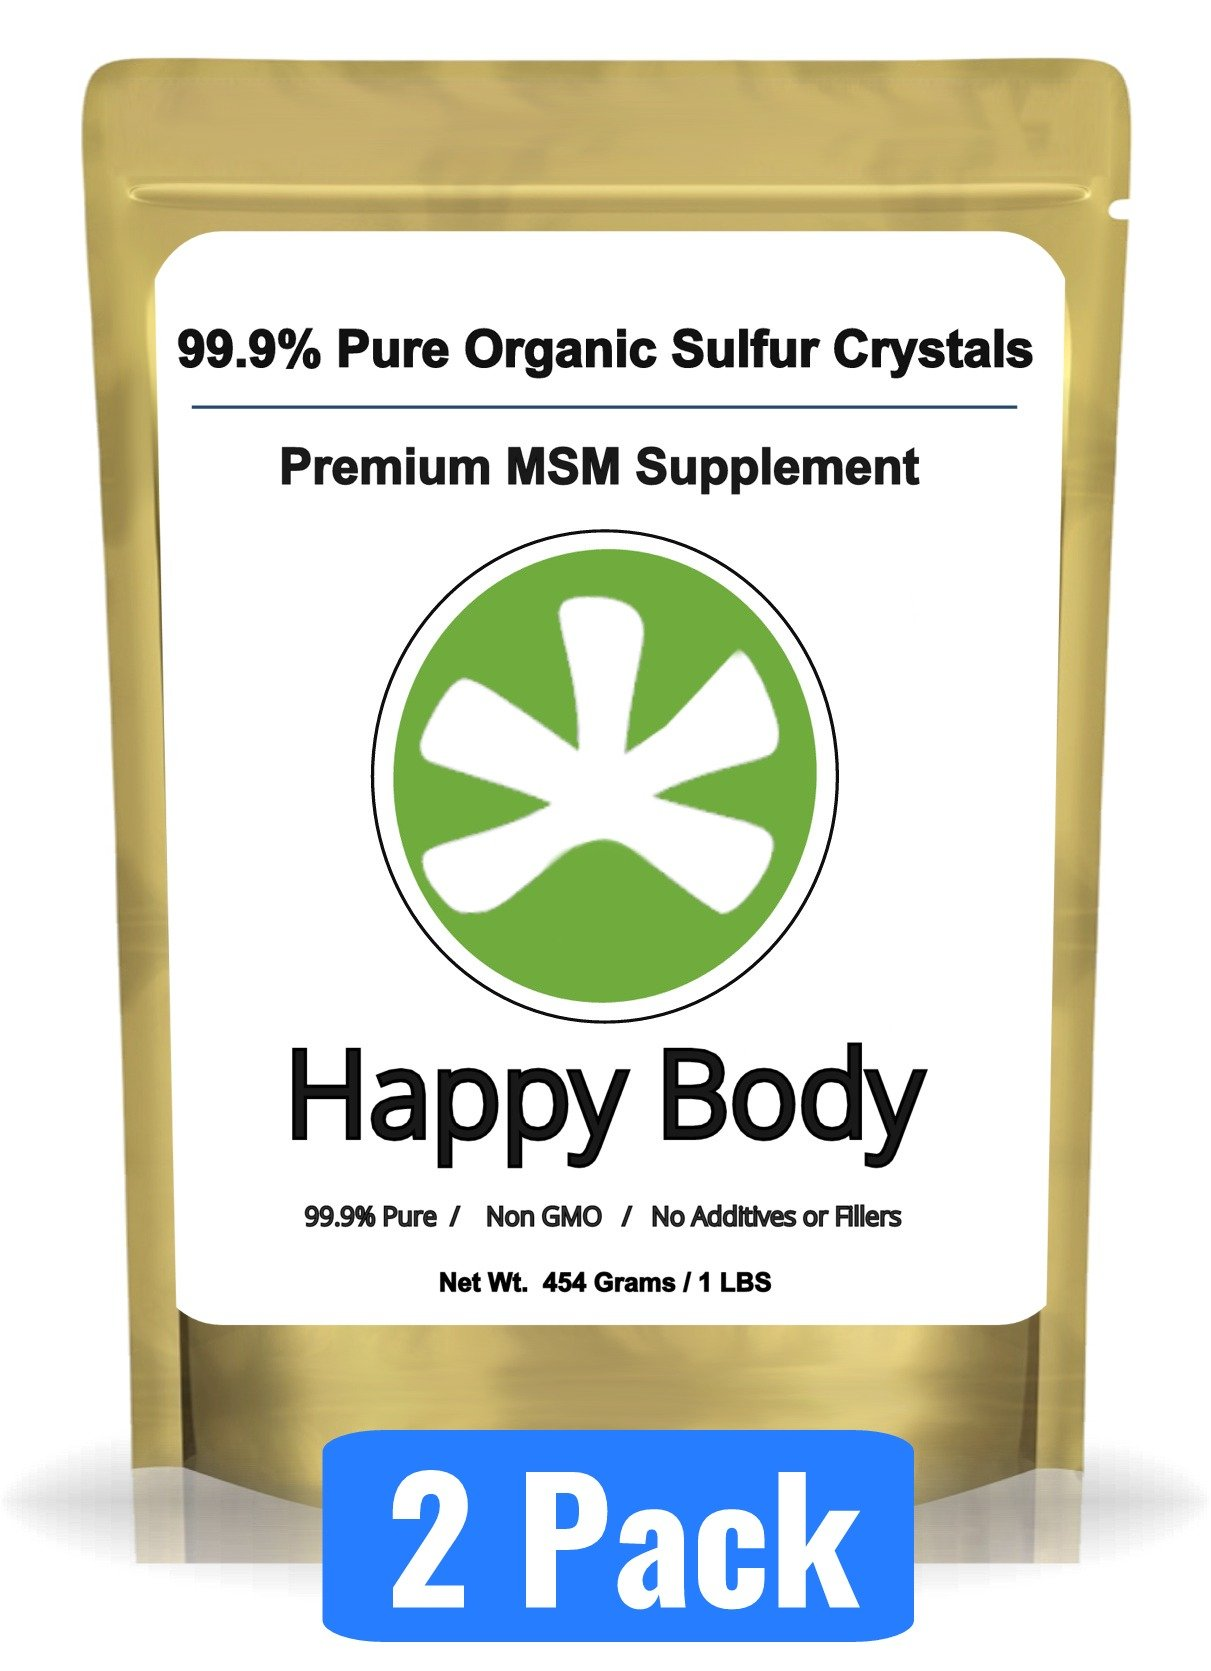 Organic Sulfur Crystals - 99% Pure MSM Crystals, Premium MSM Supplement - 2 x 1 LBS Pack